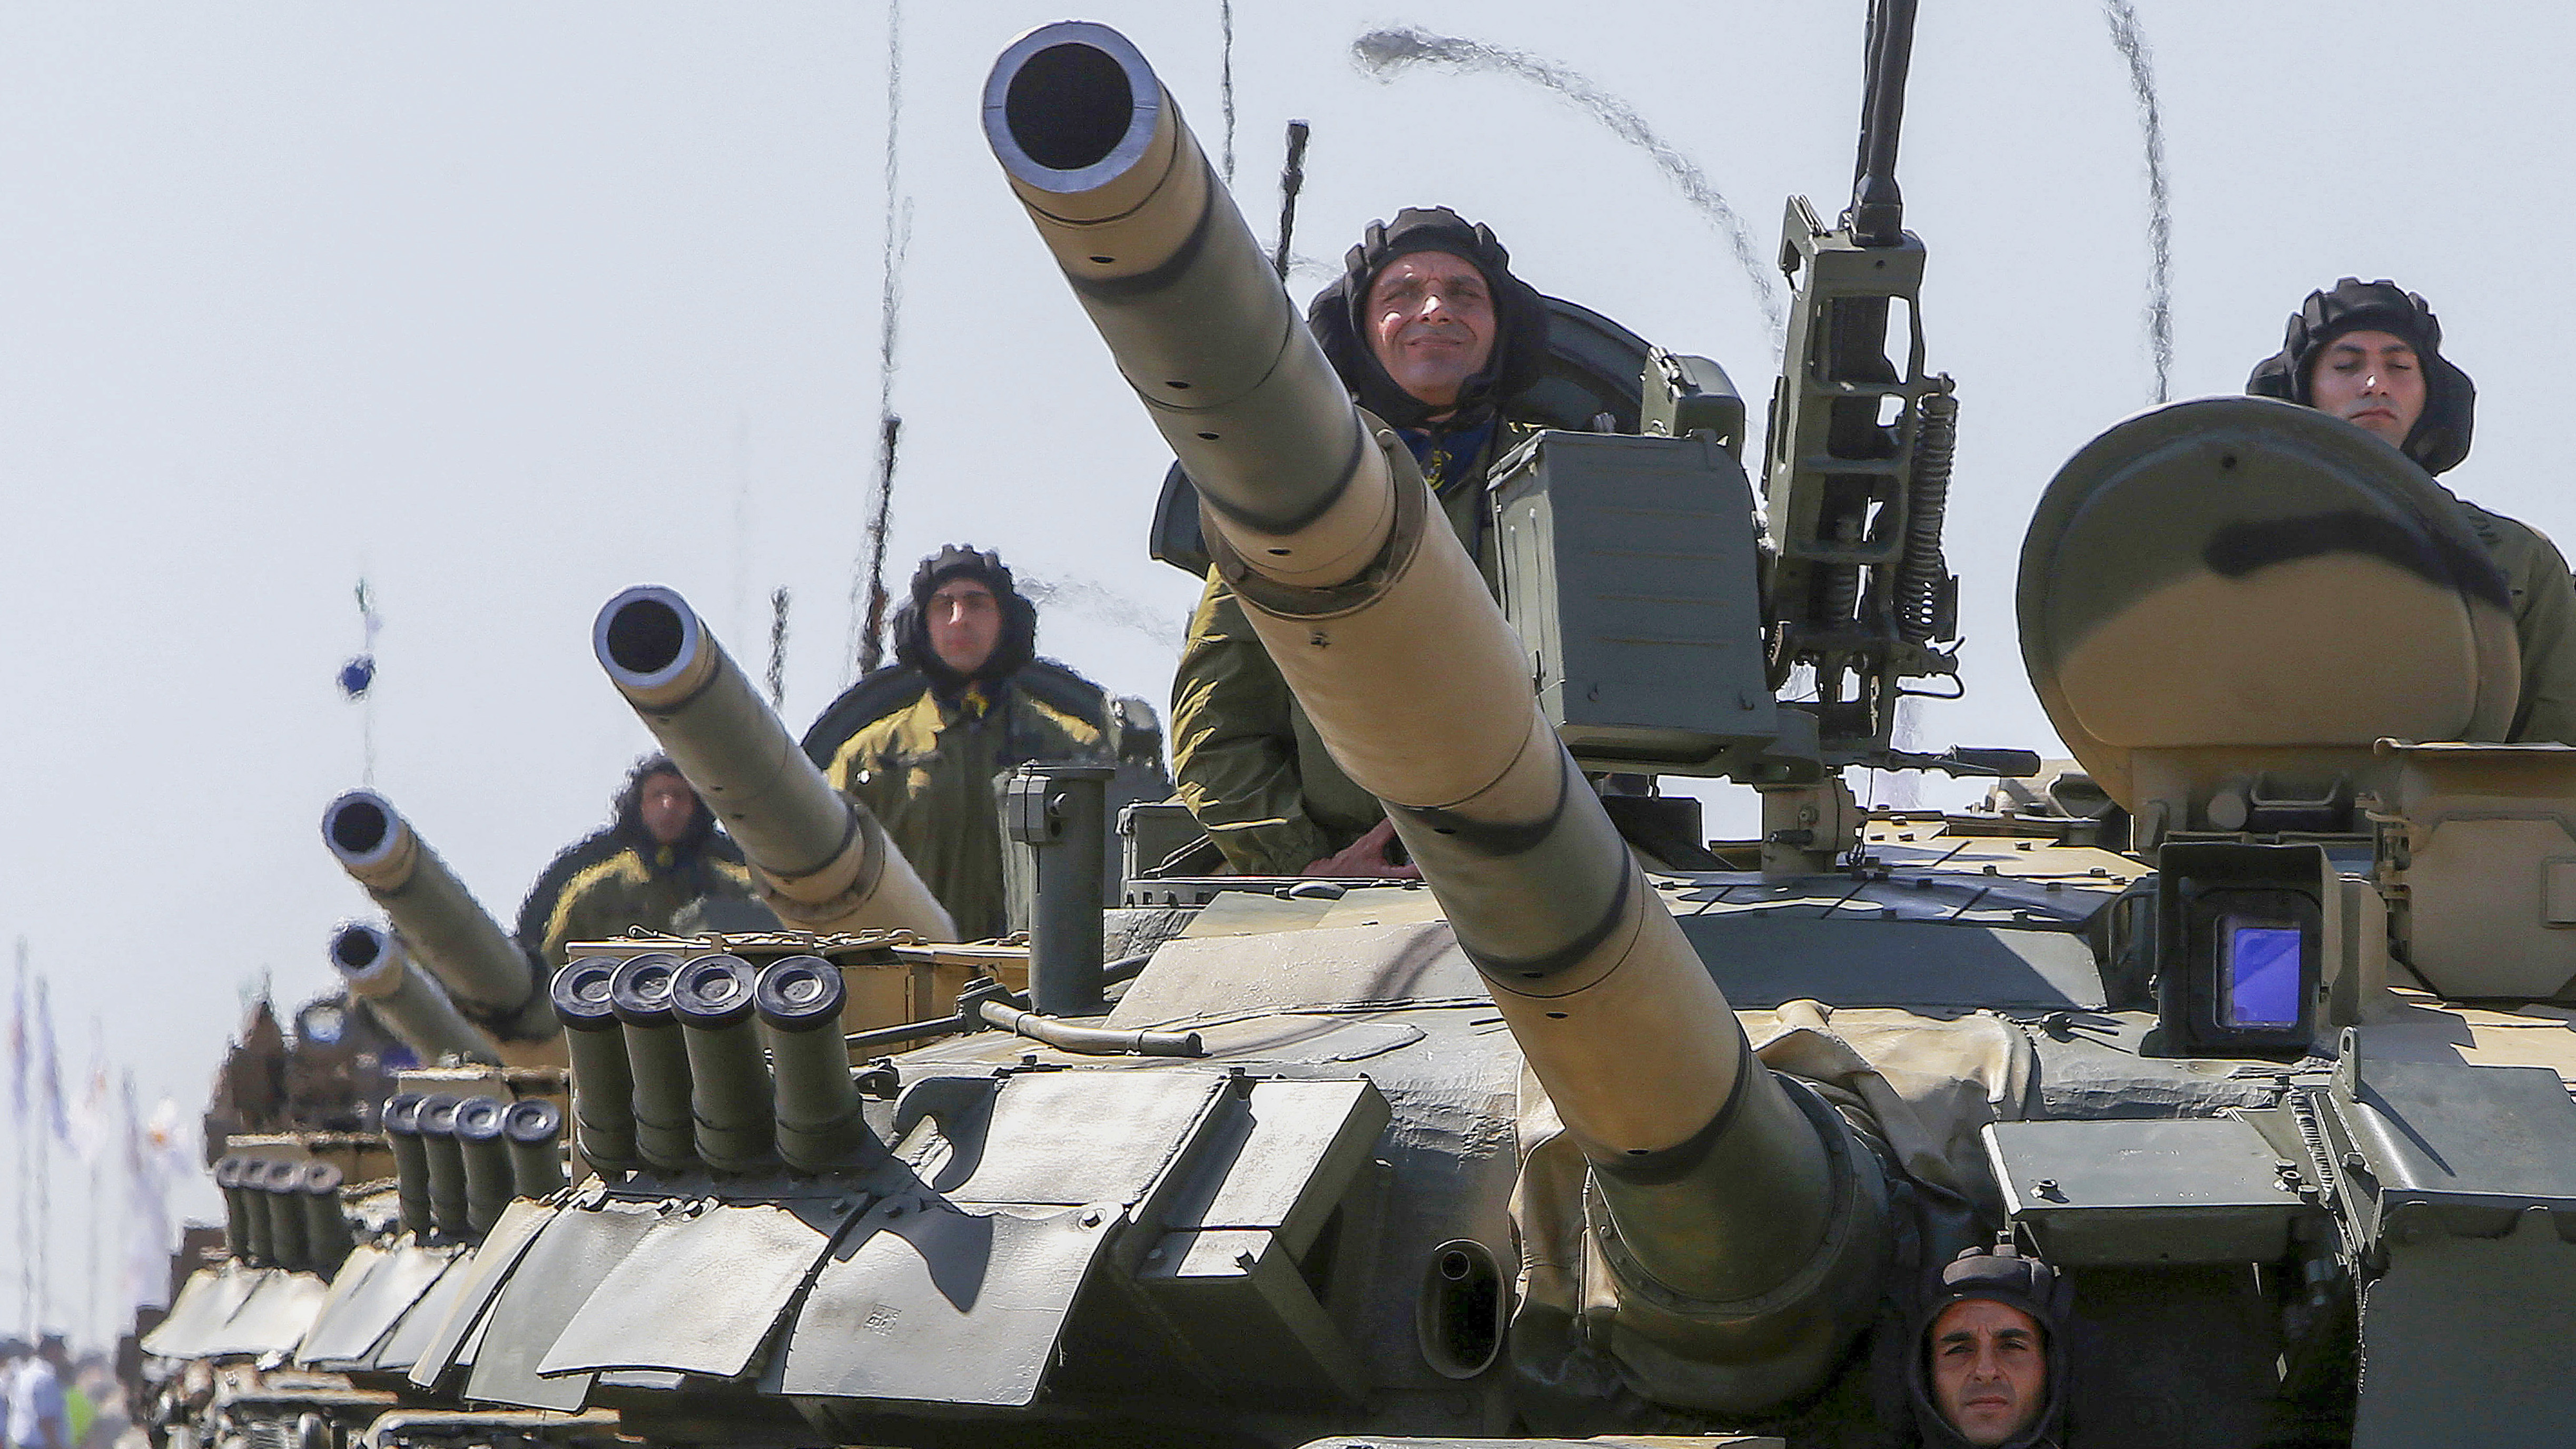 Cypriot soldiers travel on Russian-made tanks during a military parade celebrating 58 years of independence in Nicosia in the divided island of Cyprus, Monday, Oct. 1, 2018. The island of Cyprus has been divided since 1974, when Turkey invaded in response to a coup aimed at uniting the island with Greece. Cyprus gained independence from Britain in 1960. (AP Photo/Petros Karadjias)